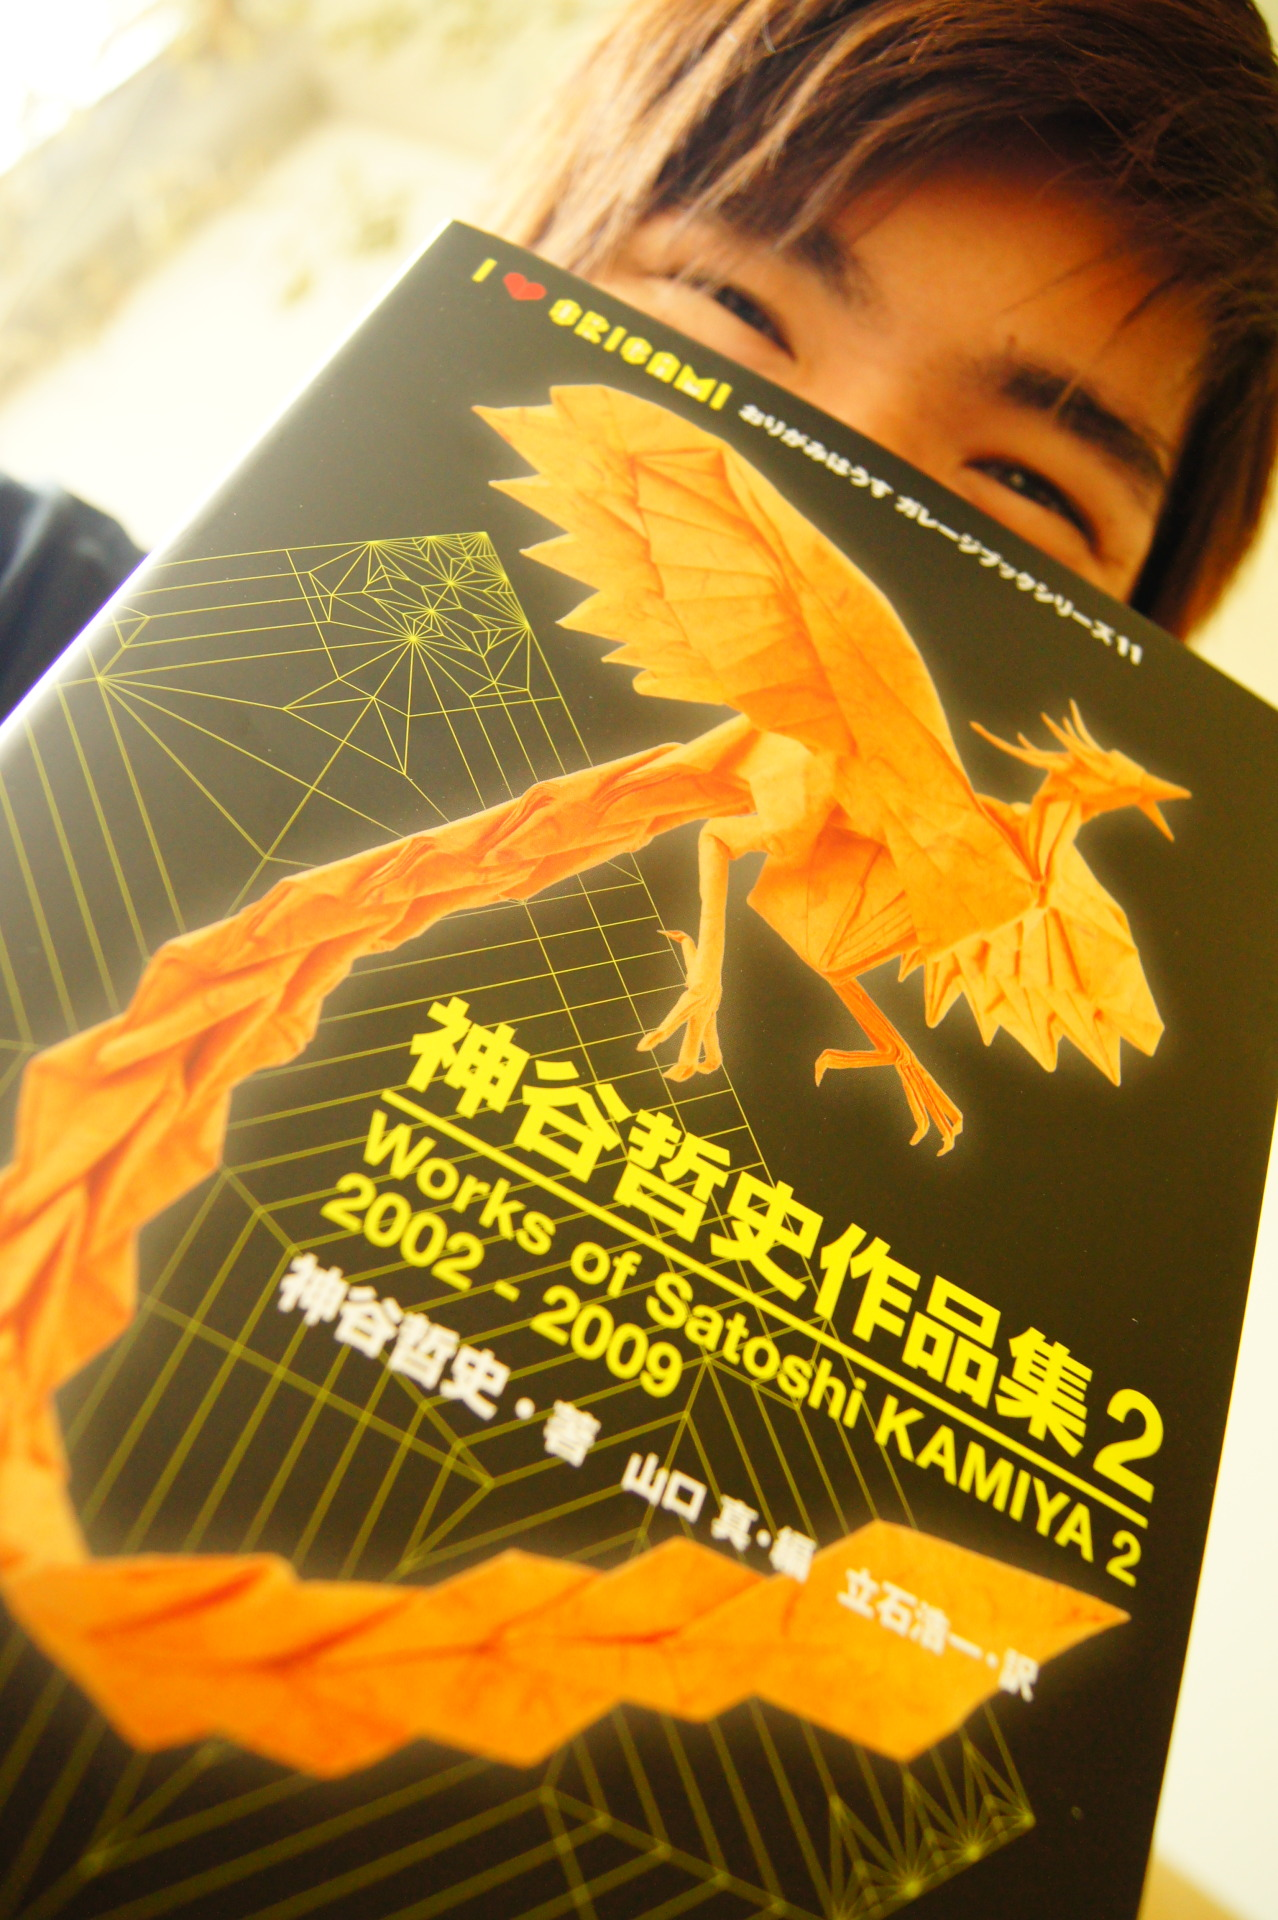 I'm so excited! I just got Kamiya Satoshi's second anthology of origami diagrams!!! I've been wanting to make his phoenix forever, and now I finally have the instructions!! :)  Now that classes are finally done (as is undergrad ><) I can fold a lot more! And spend time with my new book. :3  On another note, I've also made made a new blog for all the things I want to reblog but never do, since I have been trying to keep this one focused on my personal pictures. If you want to see what kind of things I would like to reblog but don't, the url is: waterpaperthoughts.tumblr.com. Yoroshiku onegaishimasu!